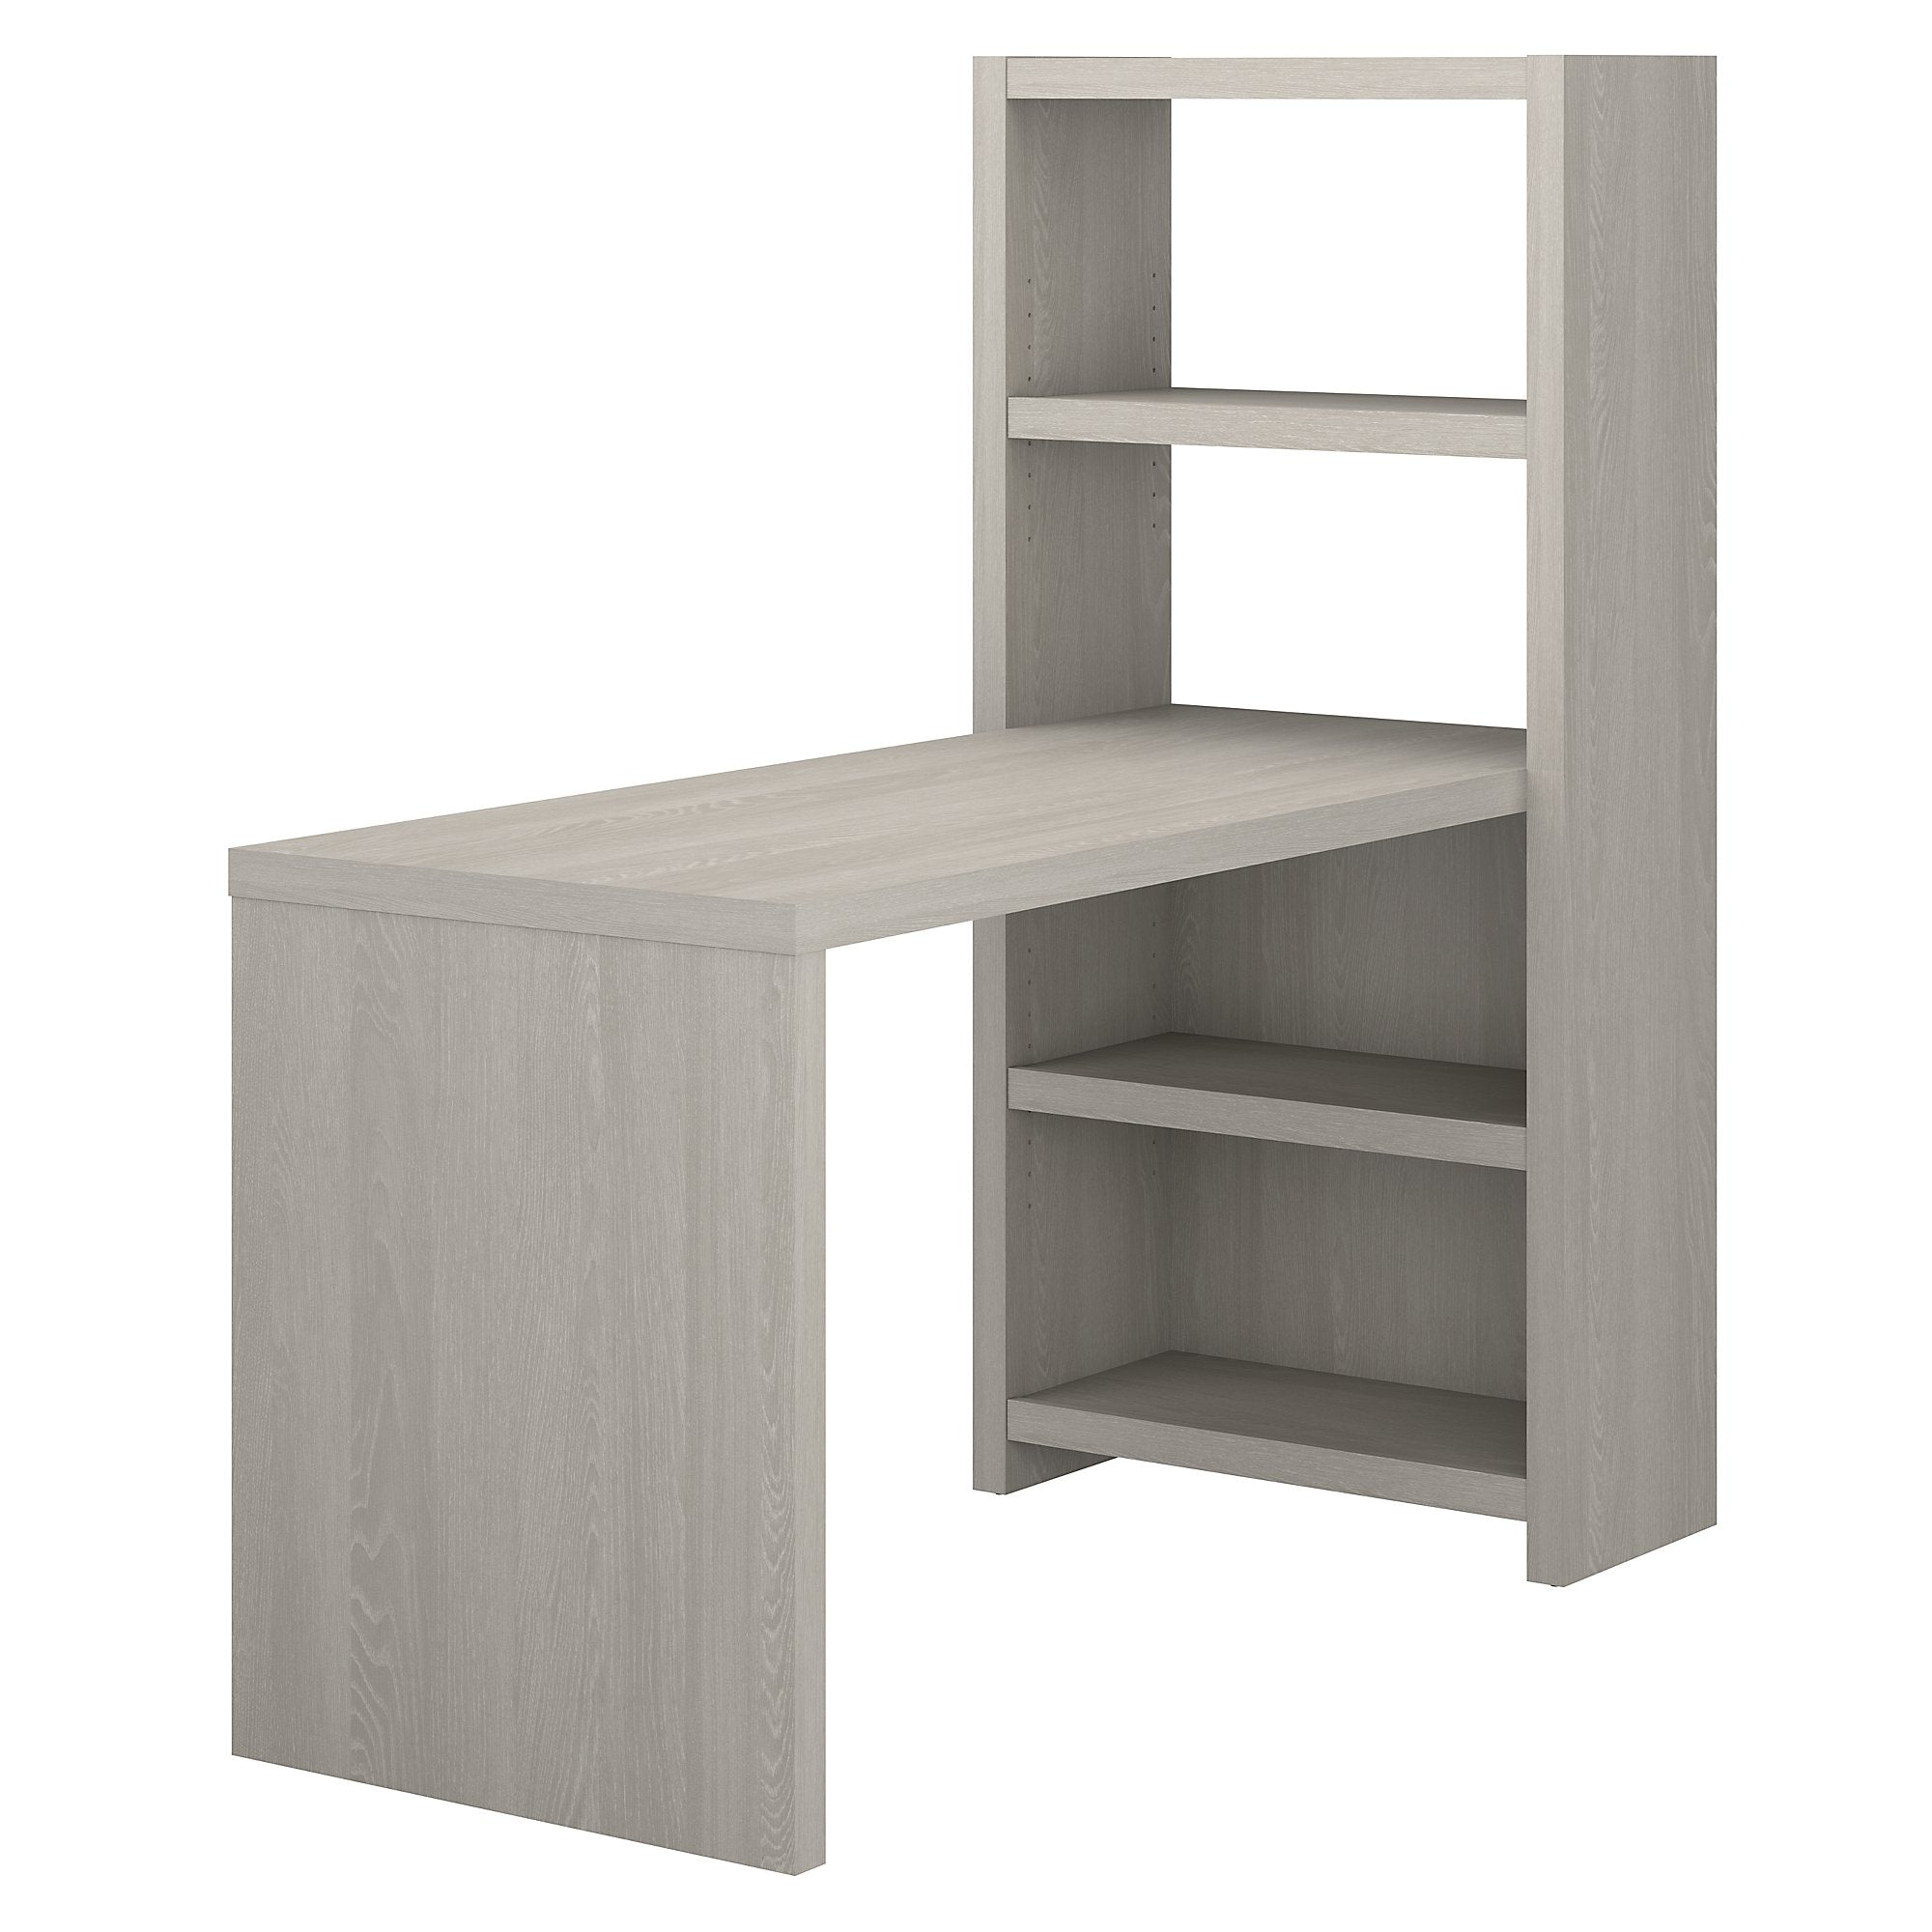 Office by kathy ireland® Gray Sand Echo 56W Bookcase Desk